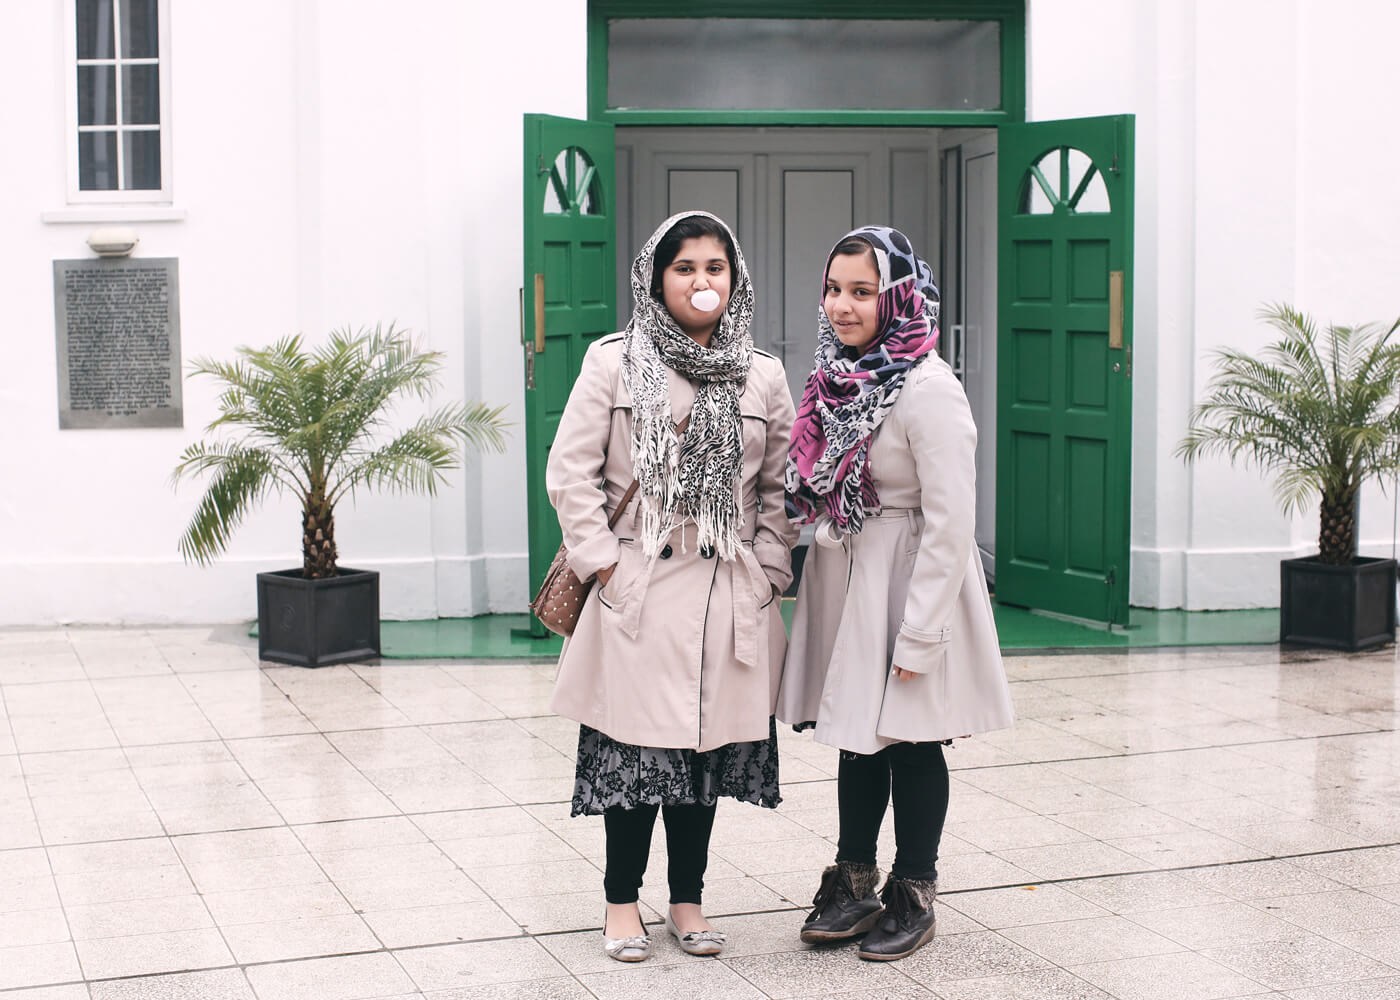 Madiha, 12, and Afsha, 11, both started to wear the hijab around the age of eight.